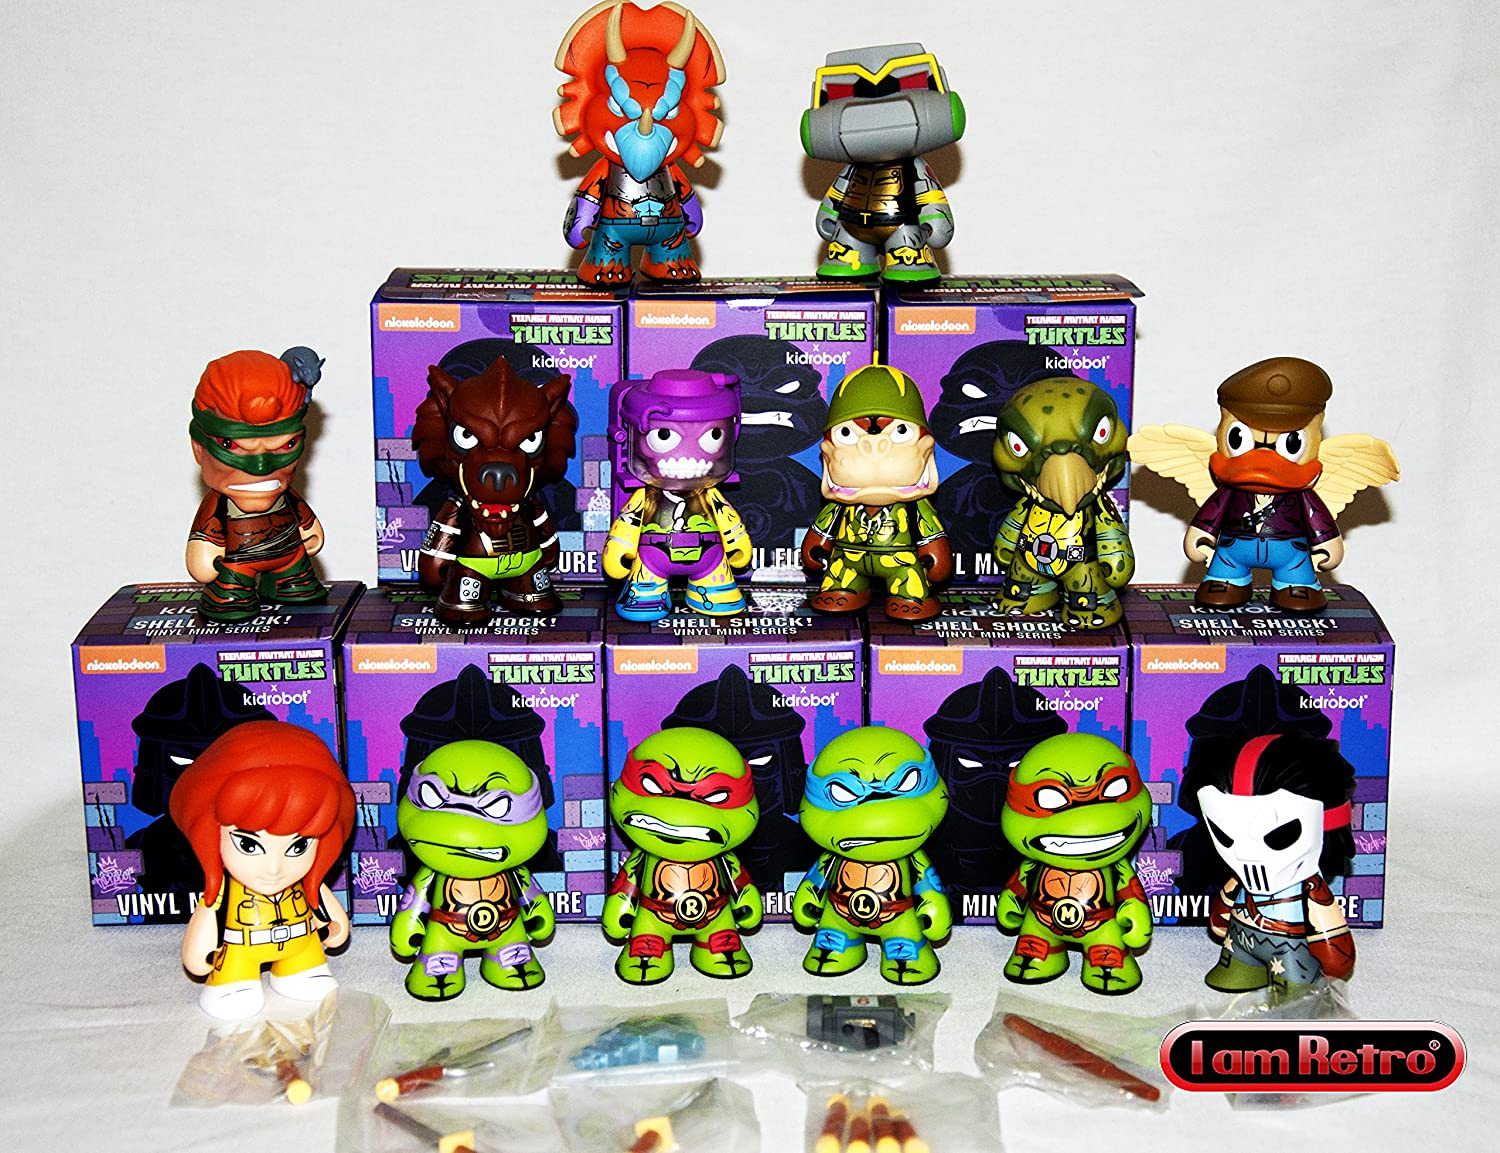 Amazon.com: TMNT Ninja Turtles Full Set of 14 Figures Shell ...